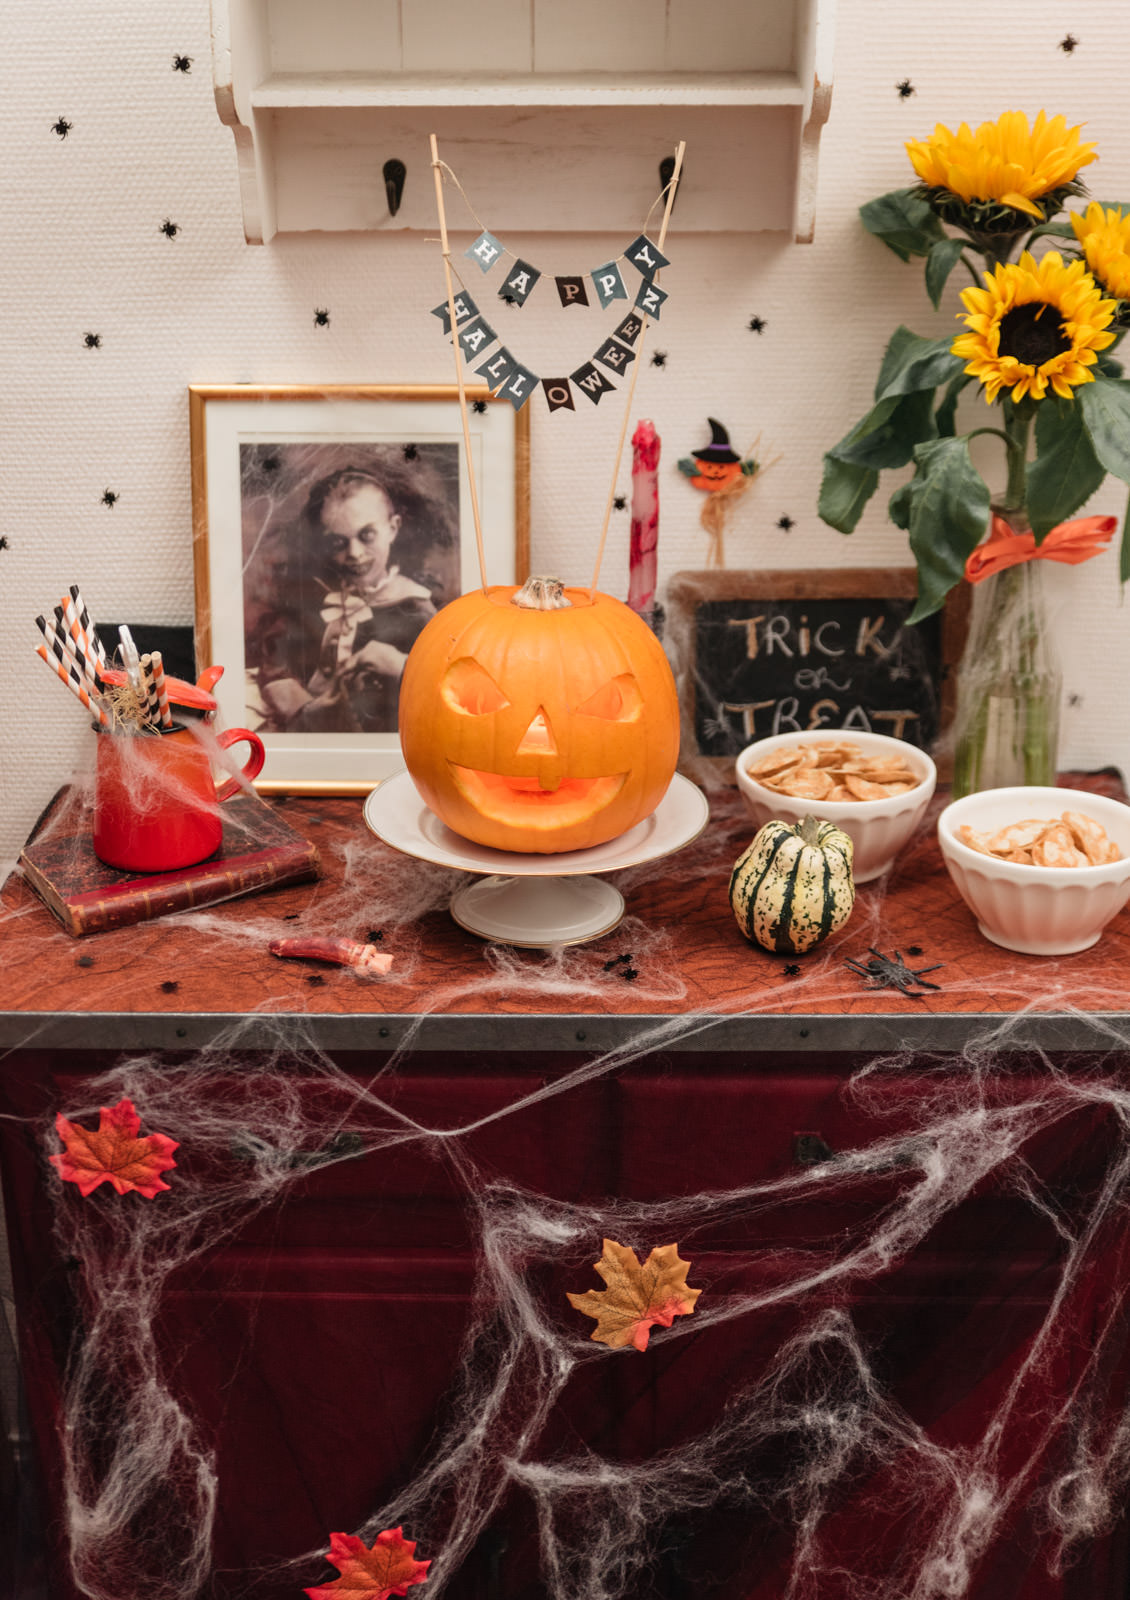 Blog-Mode-And-The-City-Lifestyle-Halloween-2017-7